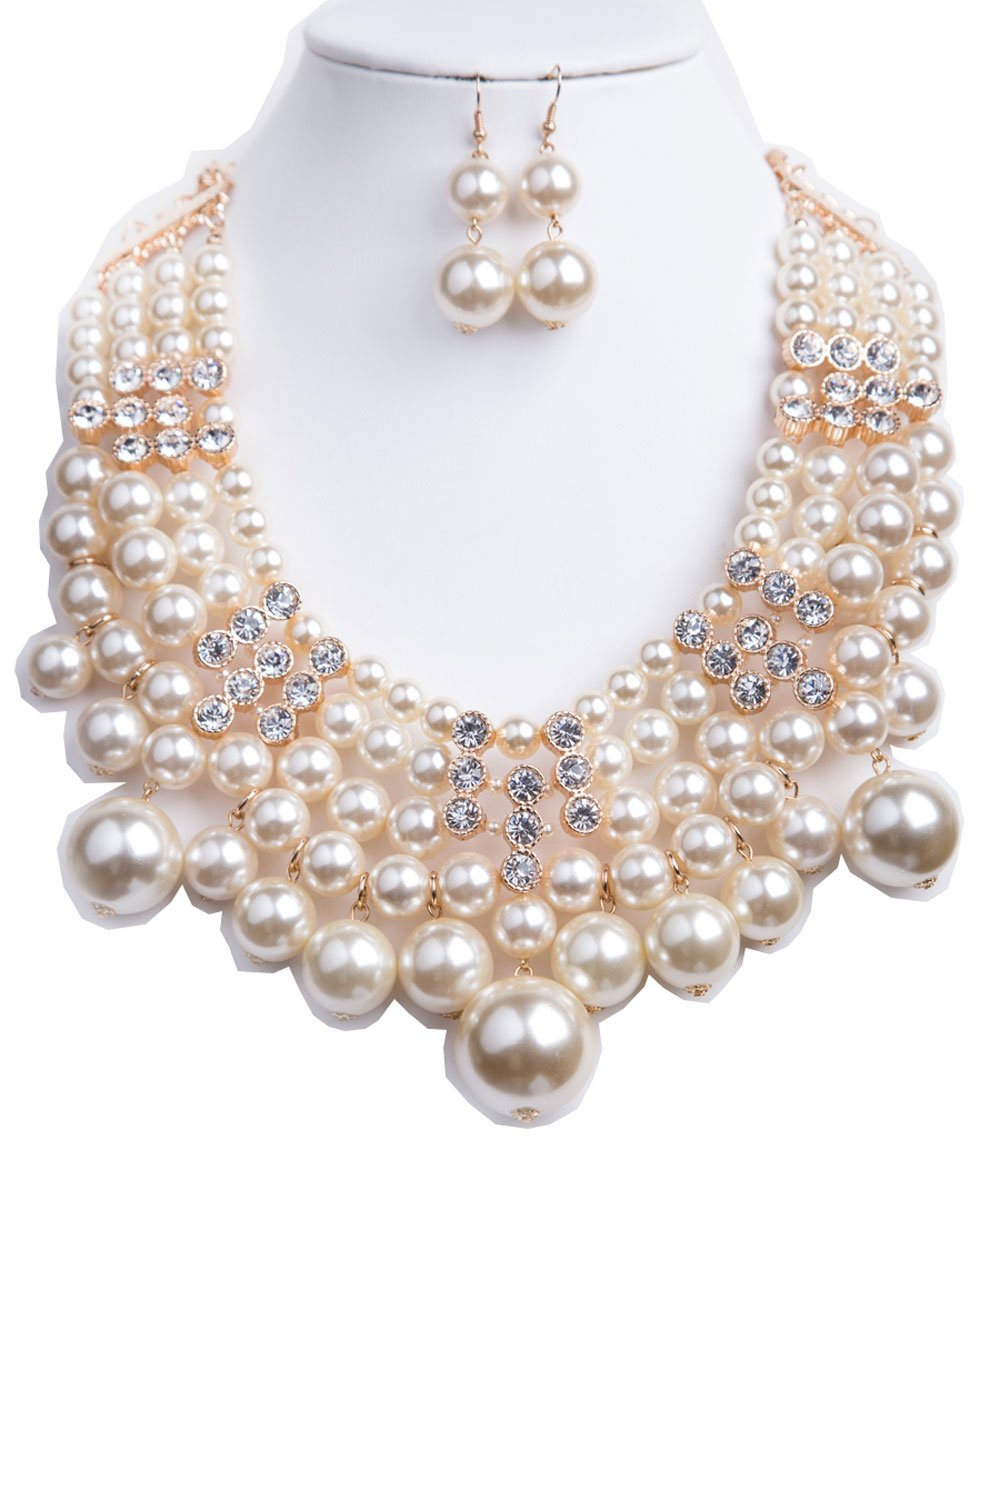 StyleNo1 {CN0467 WOMEN'S FASHIONABLE PEARL AND CRYSTAL NECKLACE WITH STONE BAR AND EARRINGS SET - Designed In USA (CREAM)